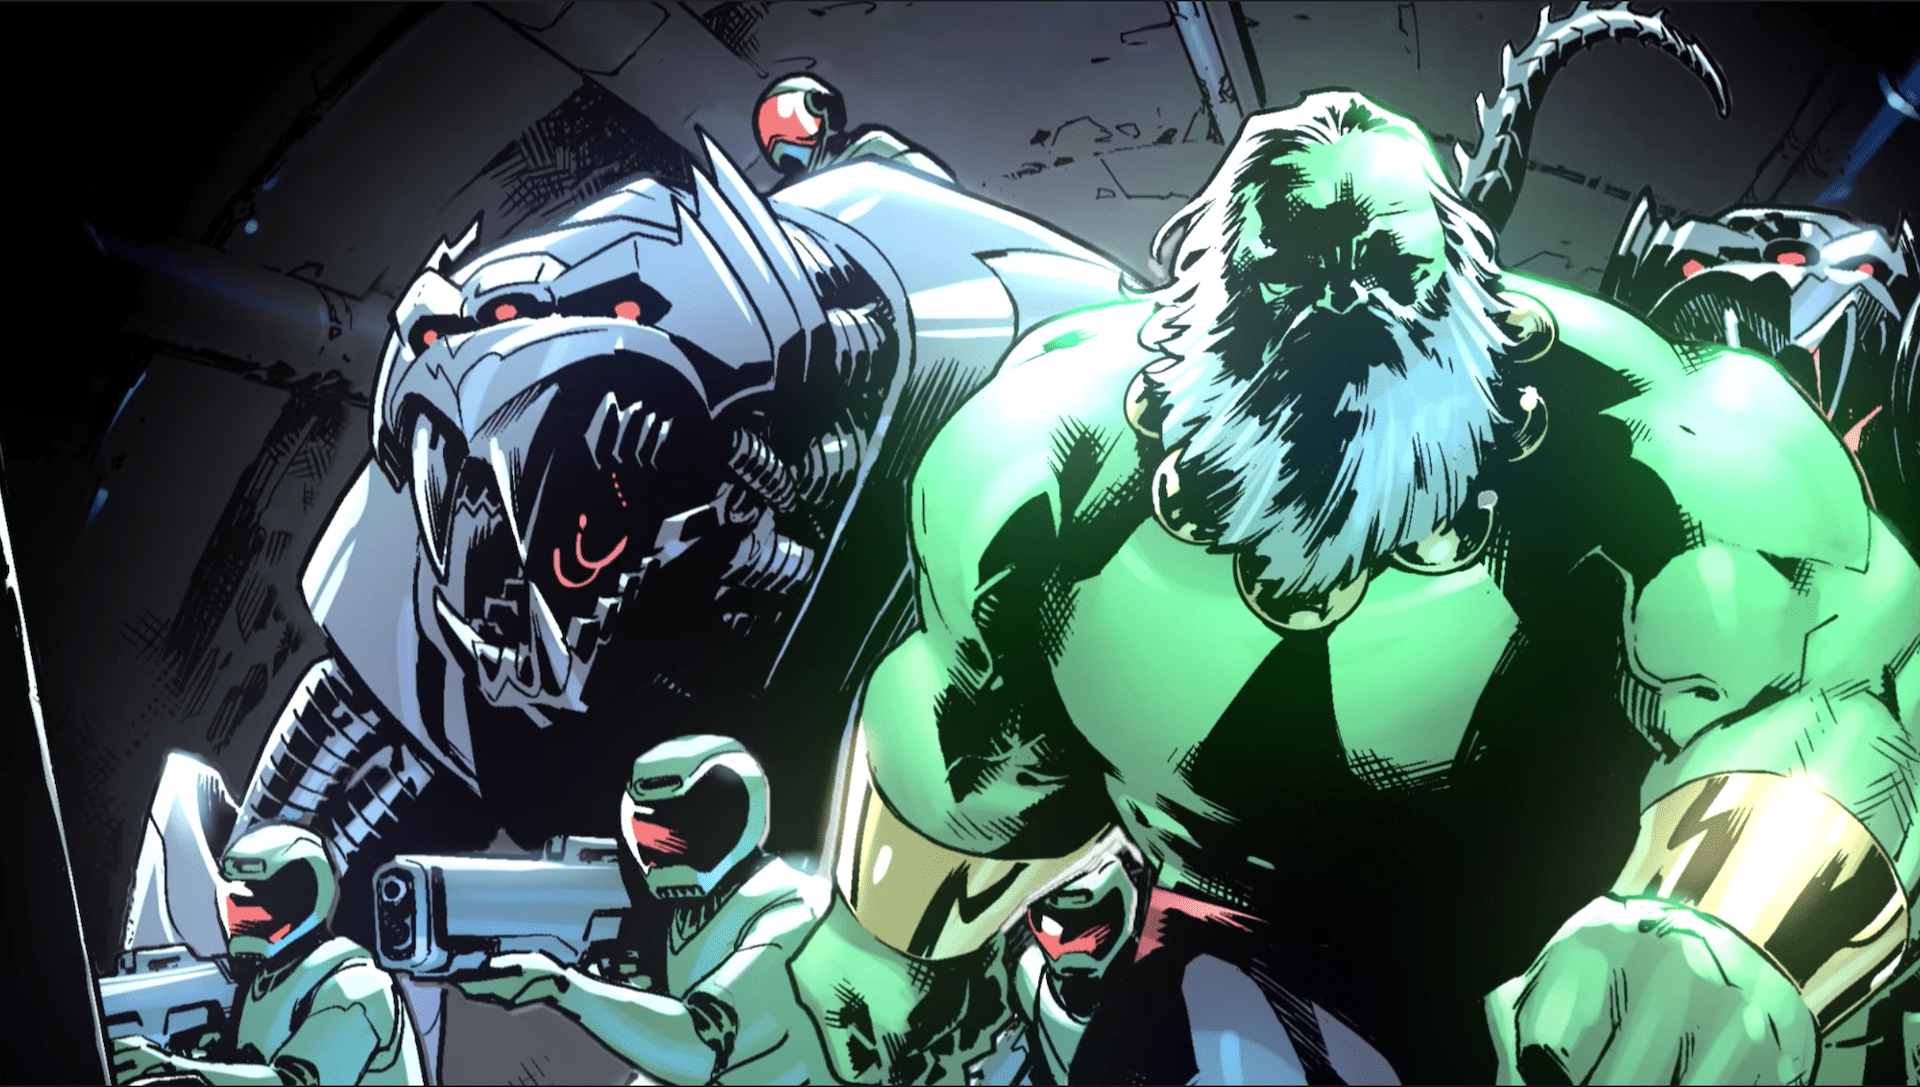 Marvel drops 'Maestro: War and Pax' trailer ahead of January 2021 release